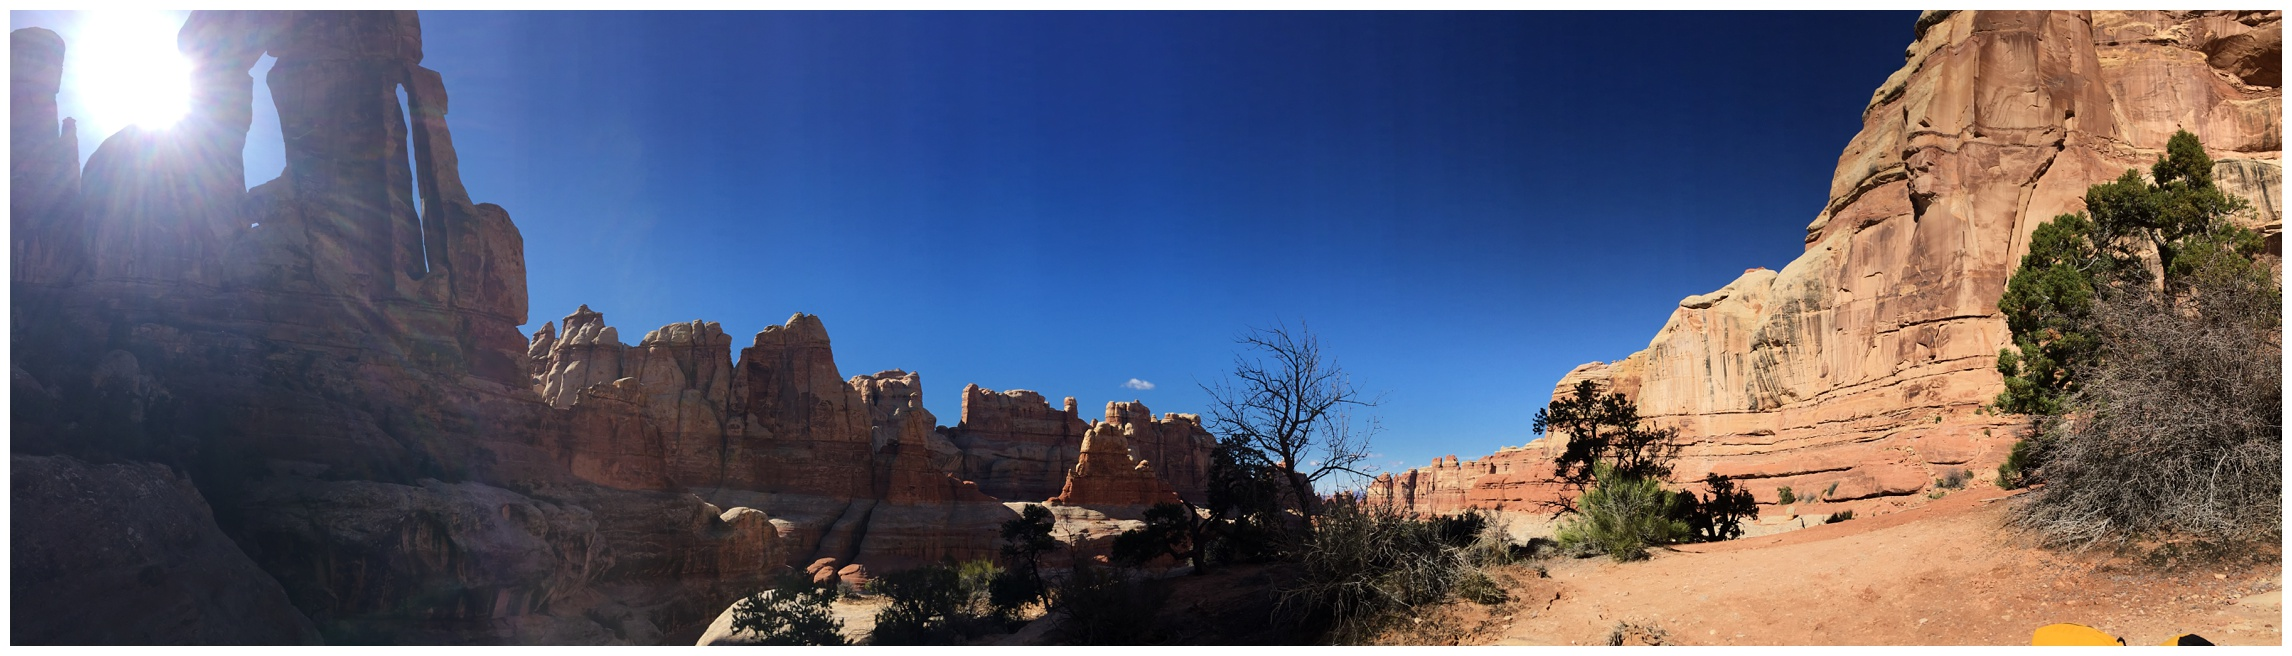 A panorama of Druid Arch and Elephant Canyon in Canyonlands National Park. Photography by Sonja Salzburg of Sonja K Photography.